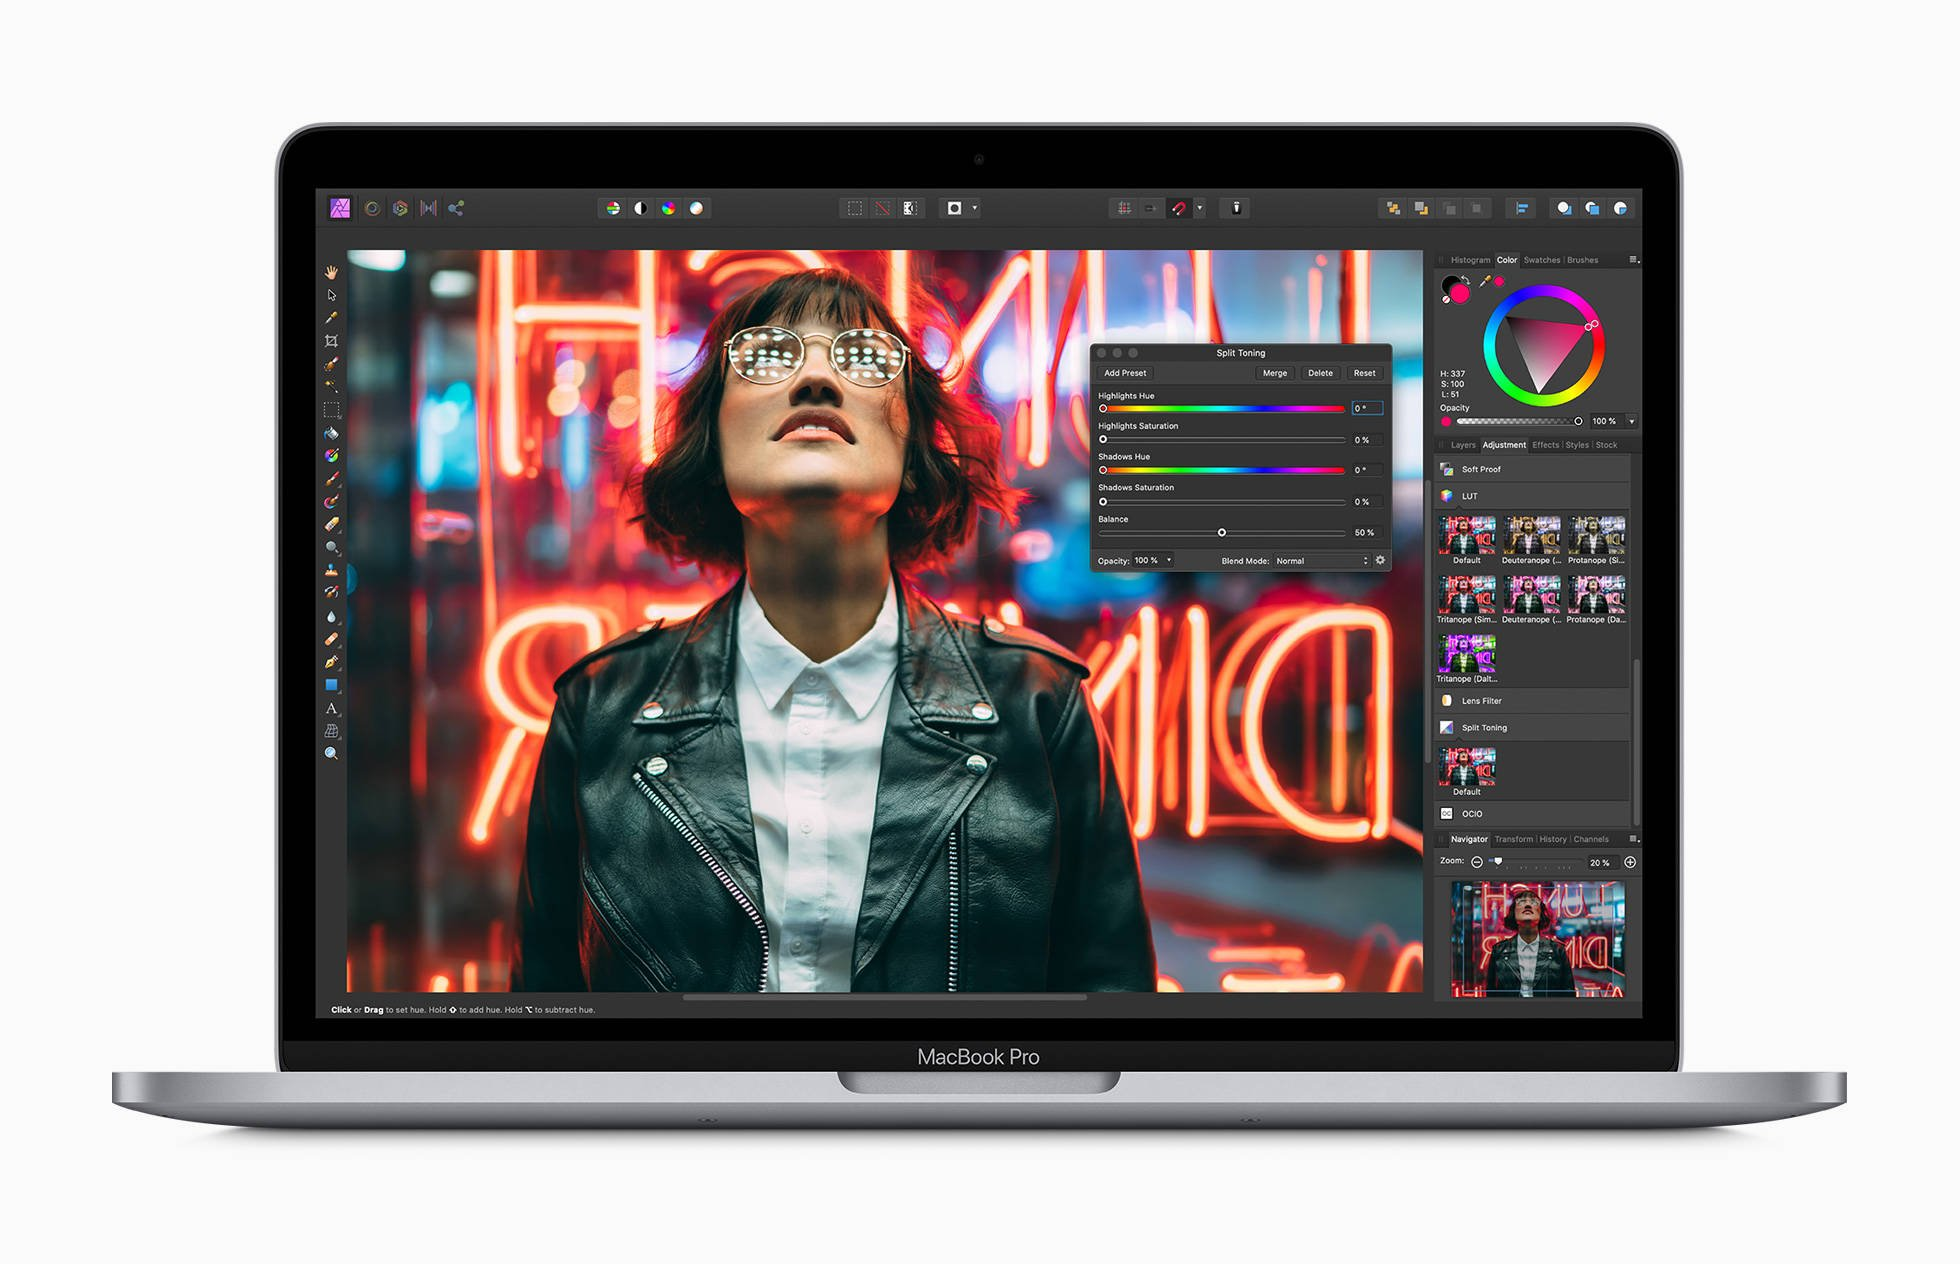 Apple launches new MacBook Pro with modified keyboard